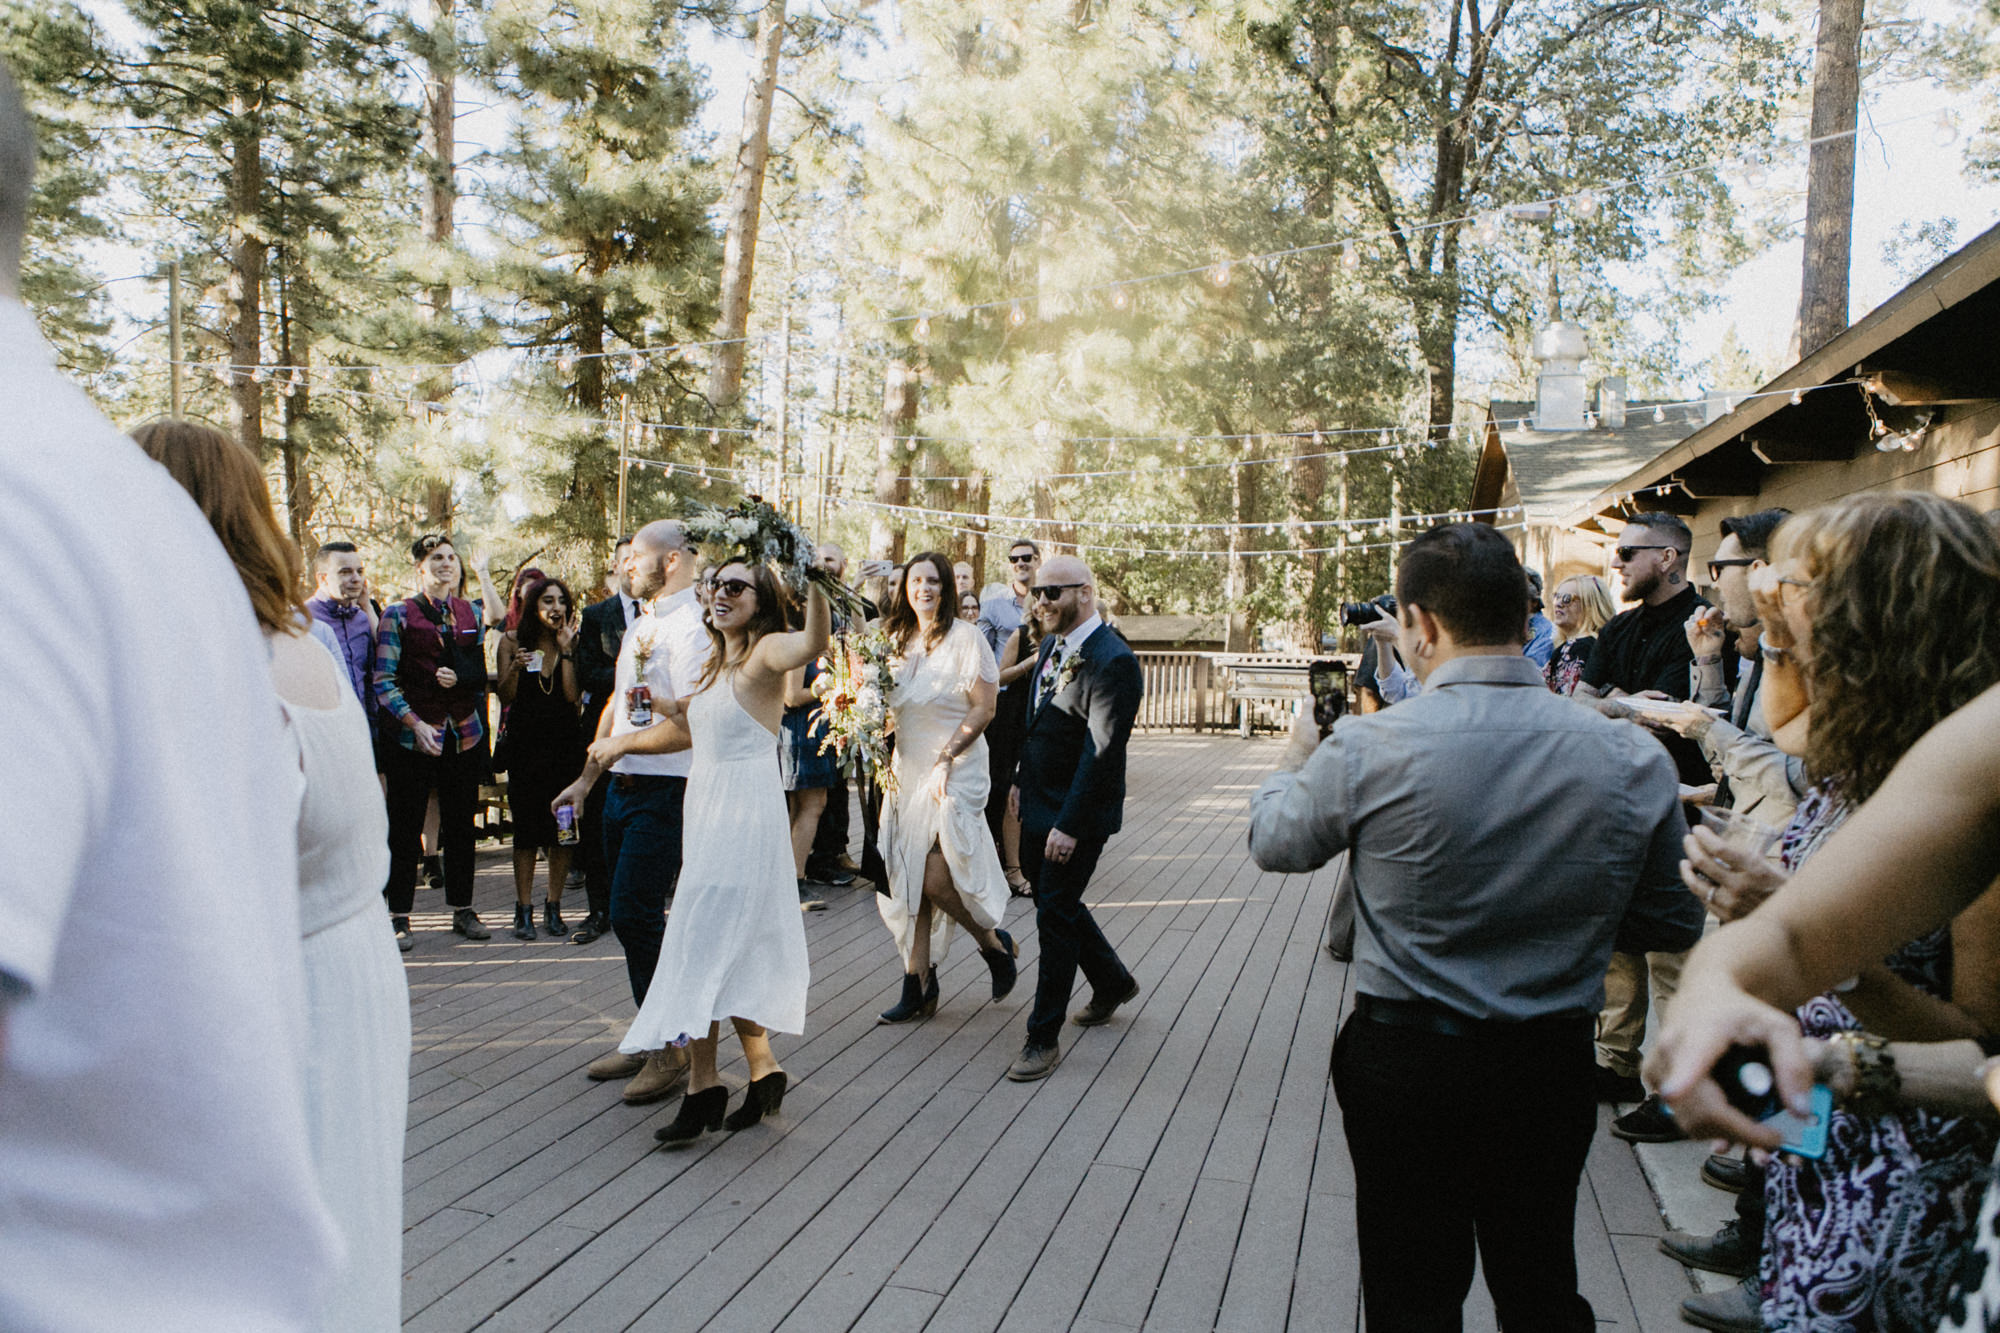 YMCA camp round meadow wedding -104.jpg